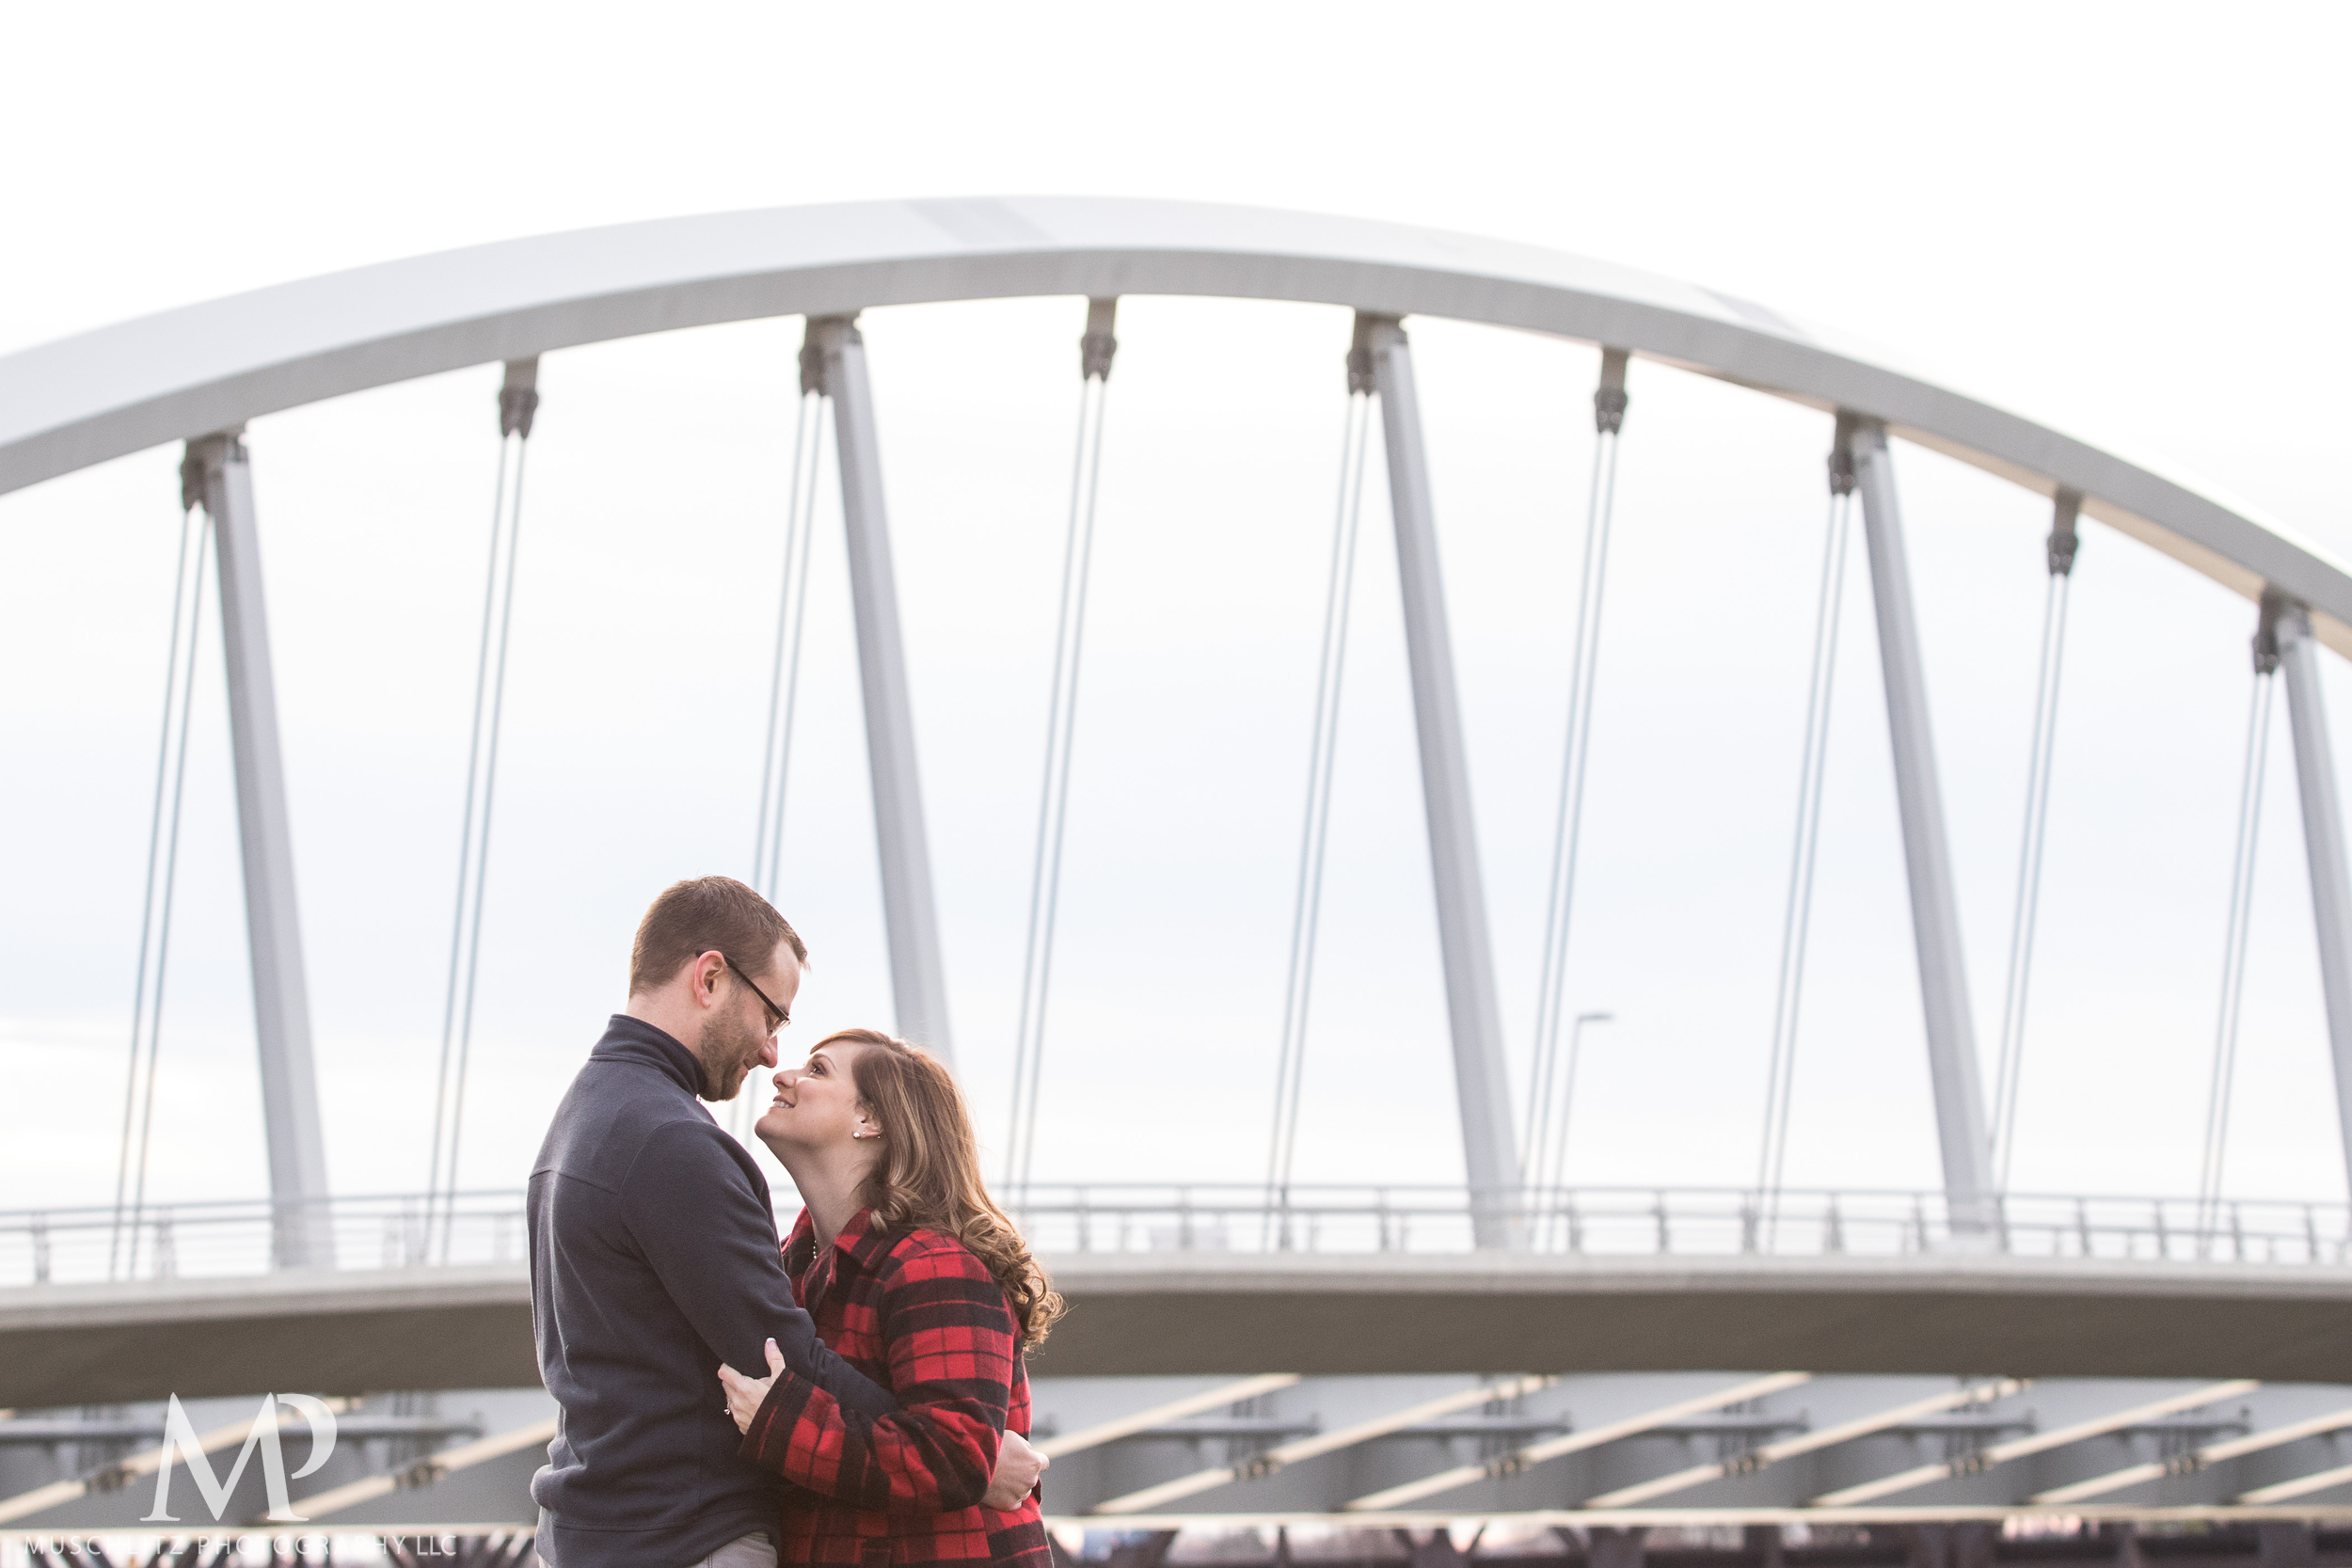 bicentennial-park-engagement-session-holiday-portraits-columbus-ohio-020.JPG